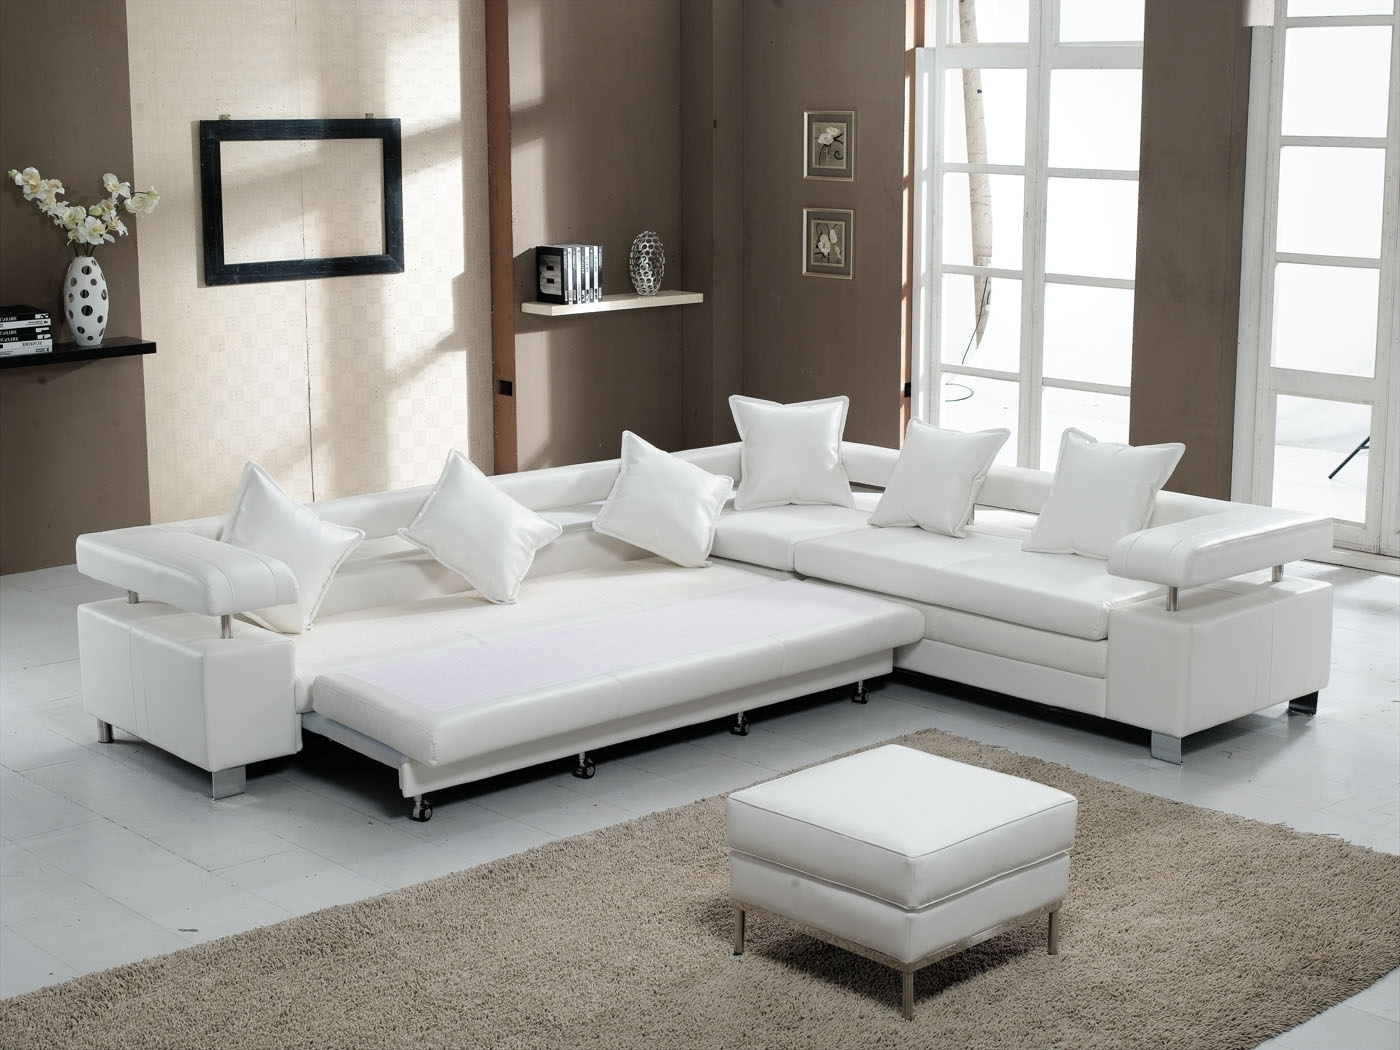 3 Piece Sectional Sleeper Sofas Inside 2017 3 Piece White Leather Sectional Sofa With Stainless Steel Legs And (View 3 of 15)